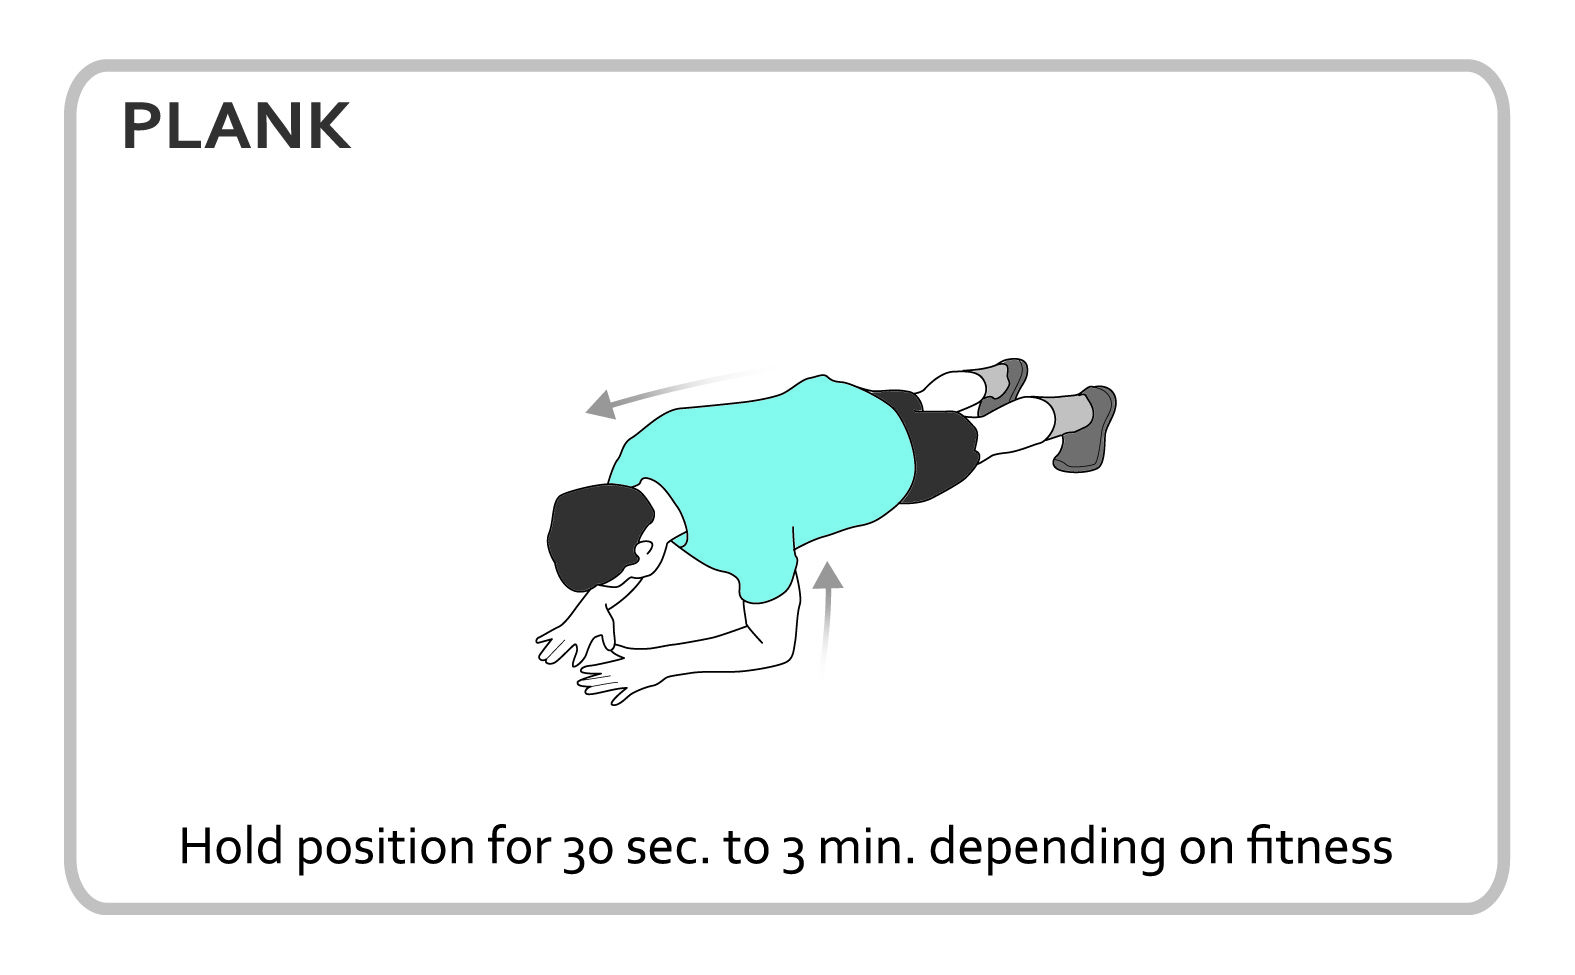 Plank Exercise Diagram Core Personal Fitness Workout